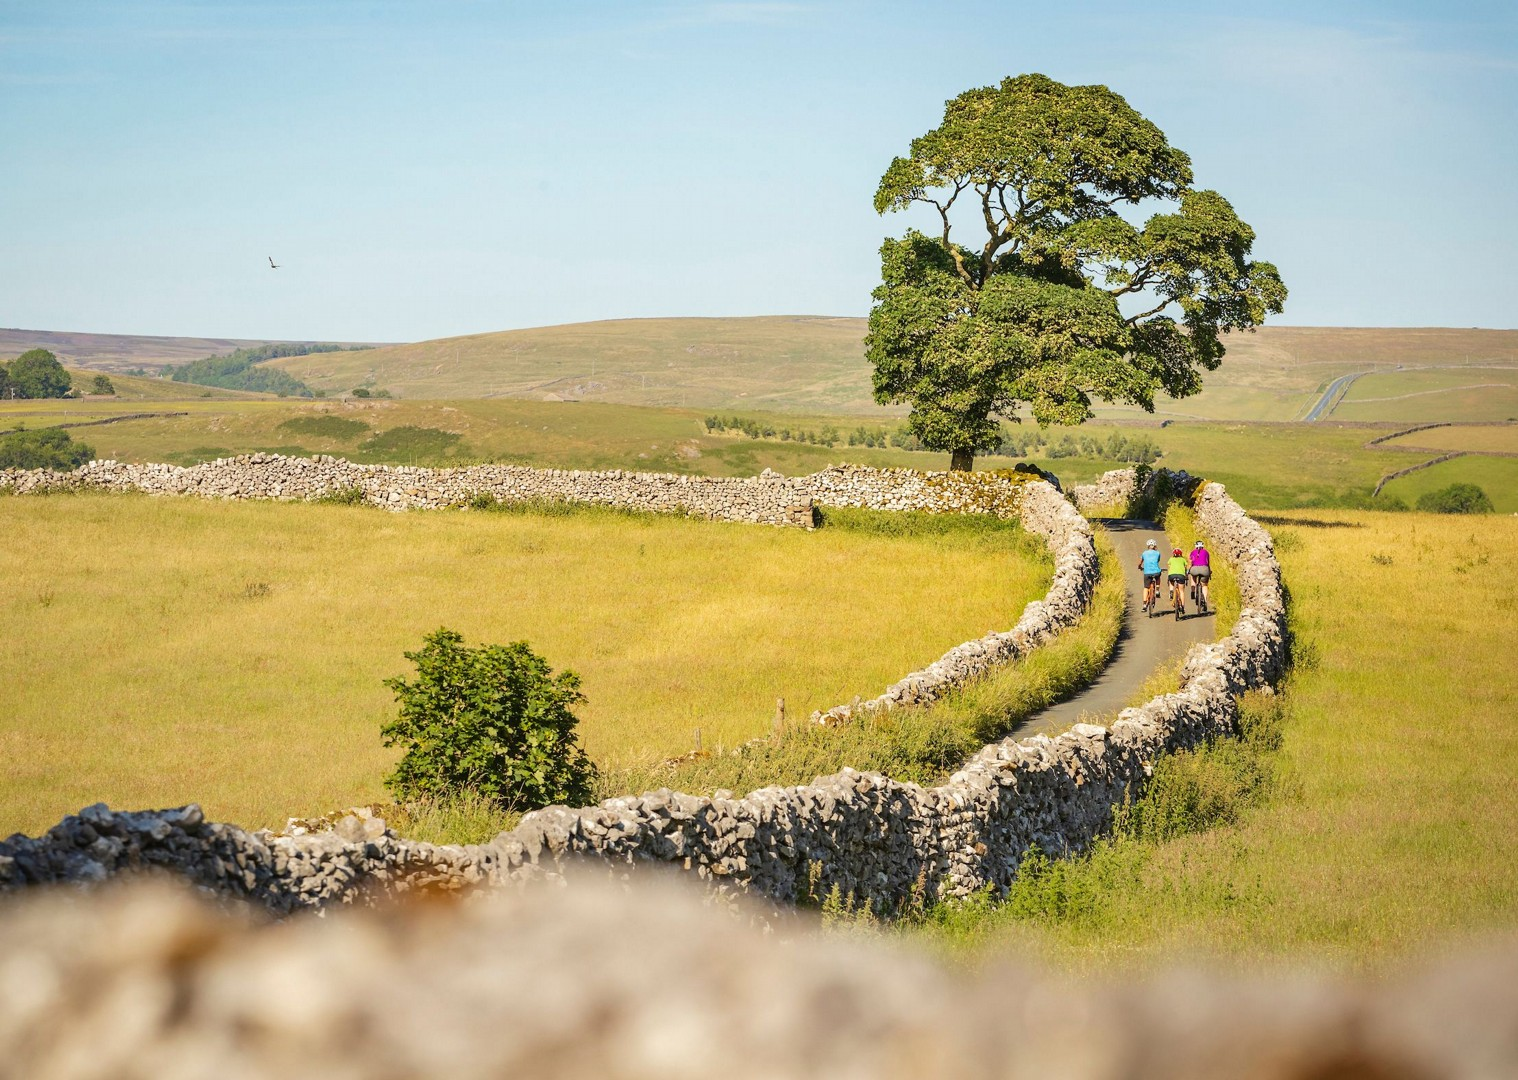 fields-of-yorkshire-bike-tour-saddle-skedaddle-leisure.jpg - UK - Way of the Roses 5 Days Cycling - Self-Guided Leisure Cycling Holiday - Leisure Cycling